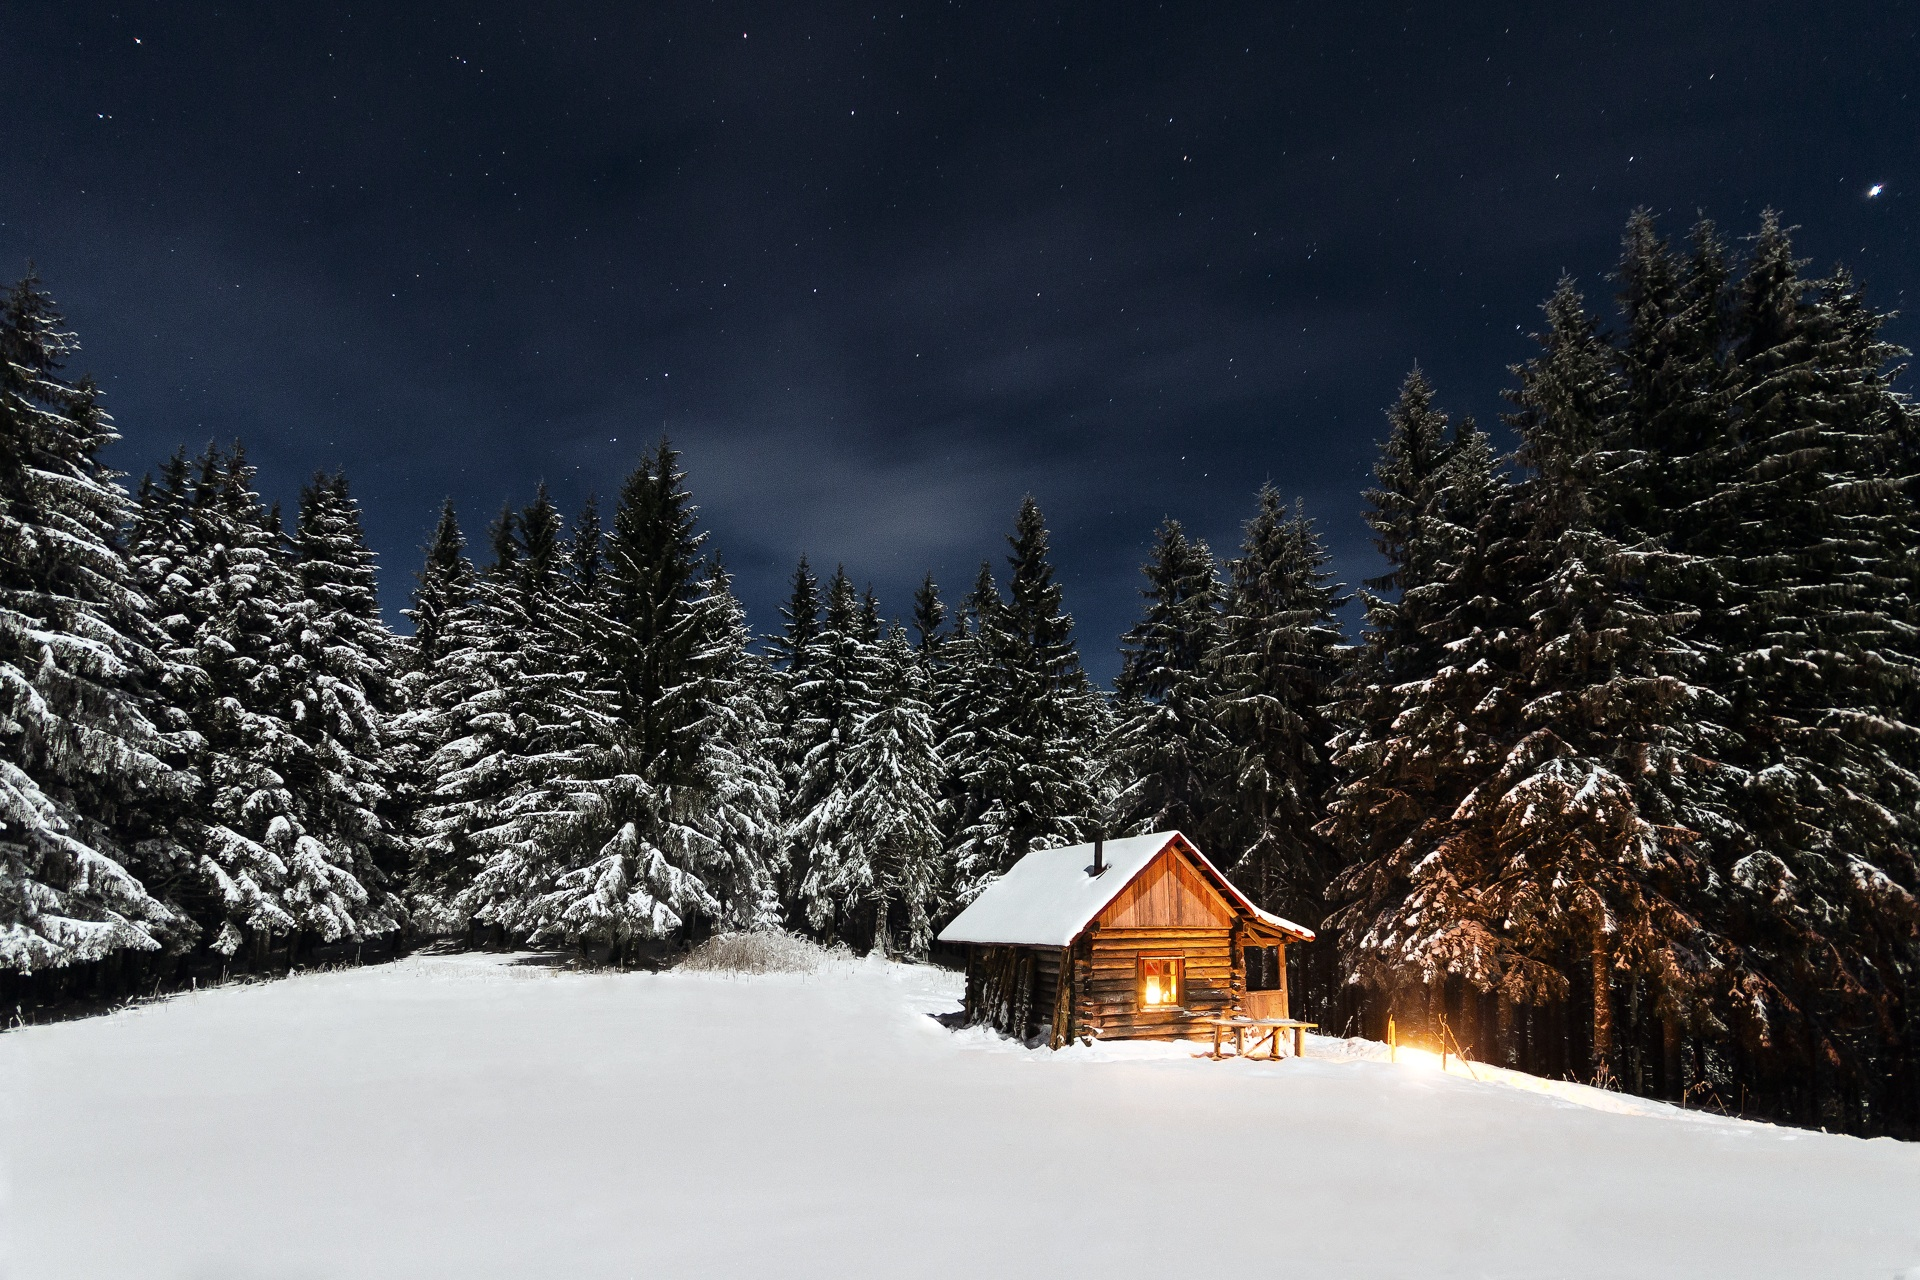 Cozy well lite log cabin in a snowy wood